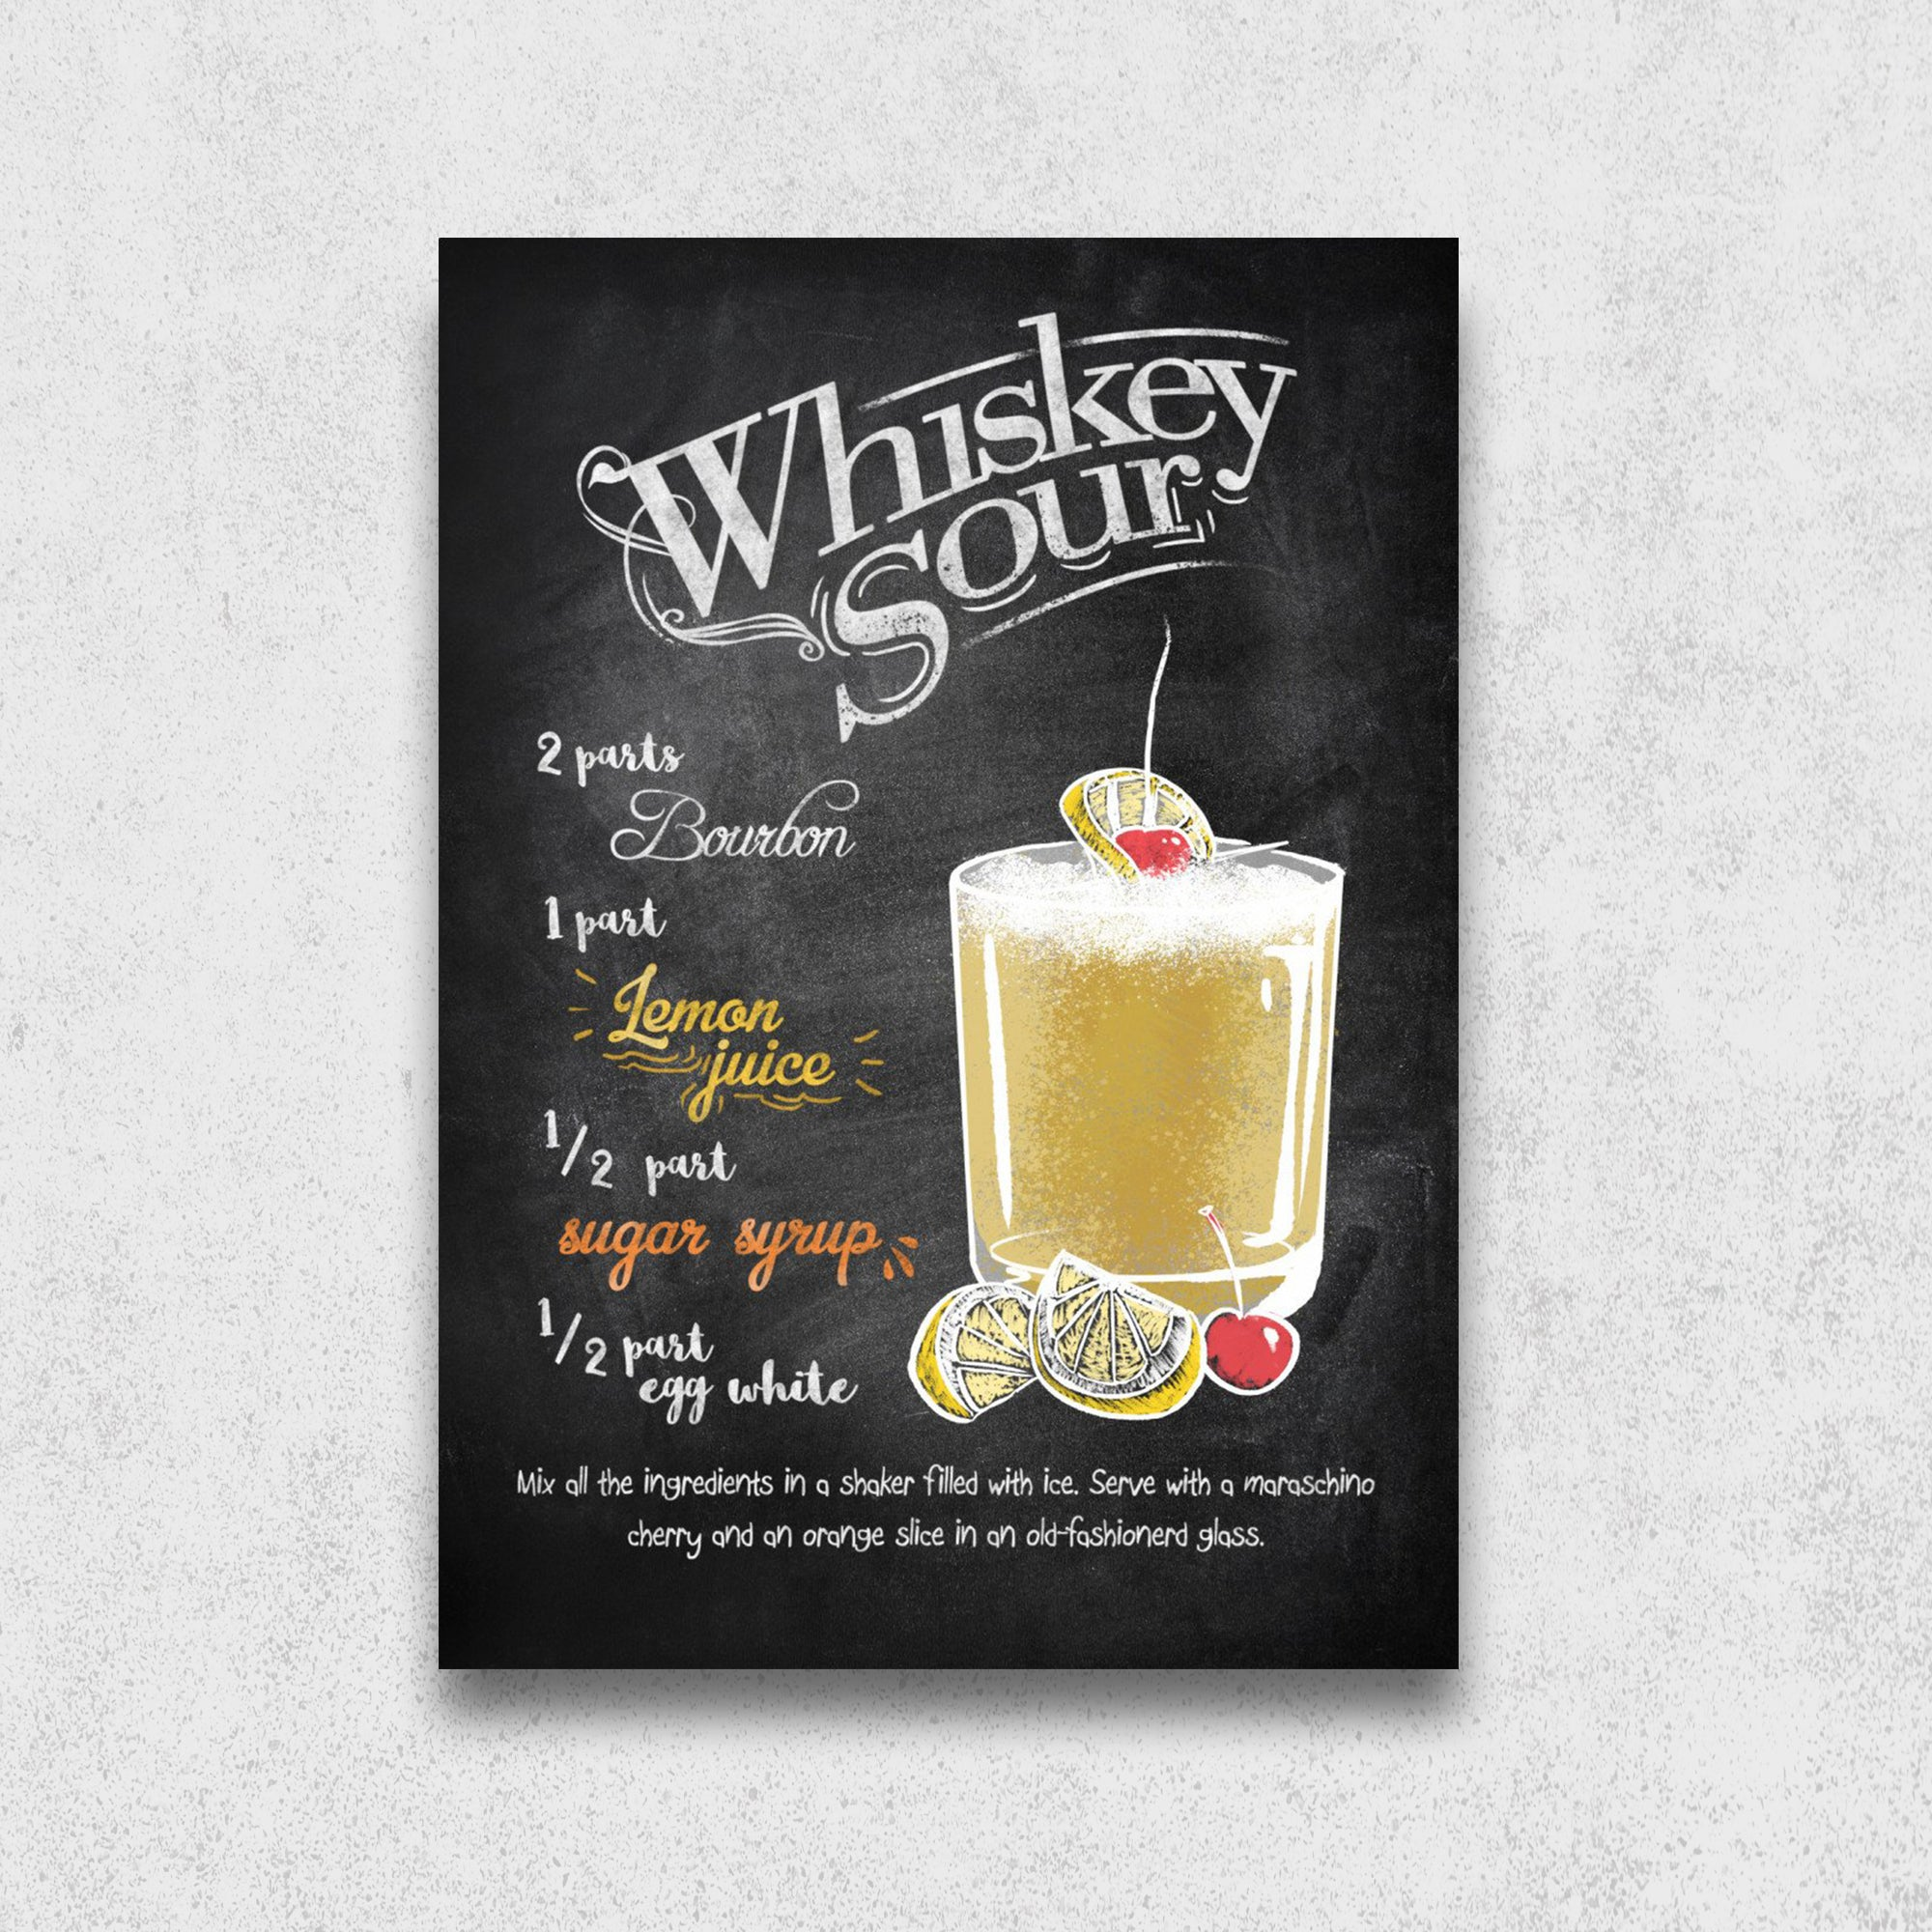 Recette du cocktail Whiskey Sour